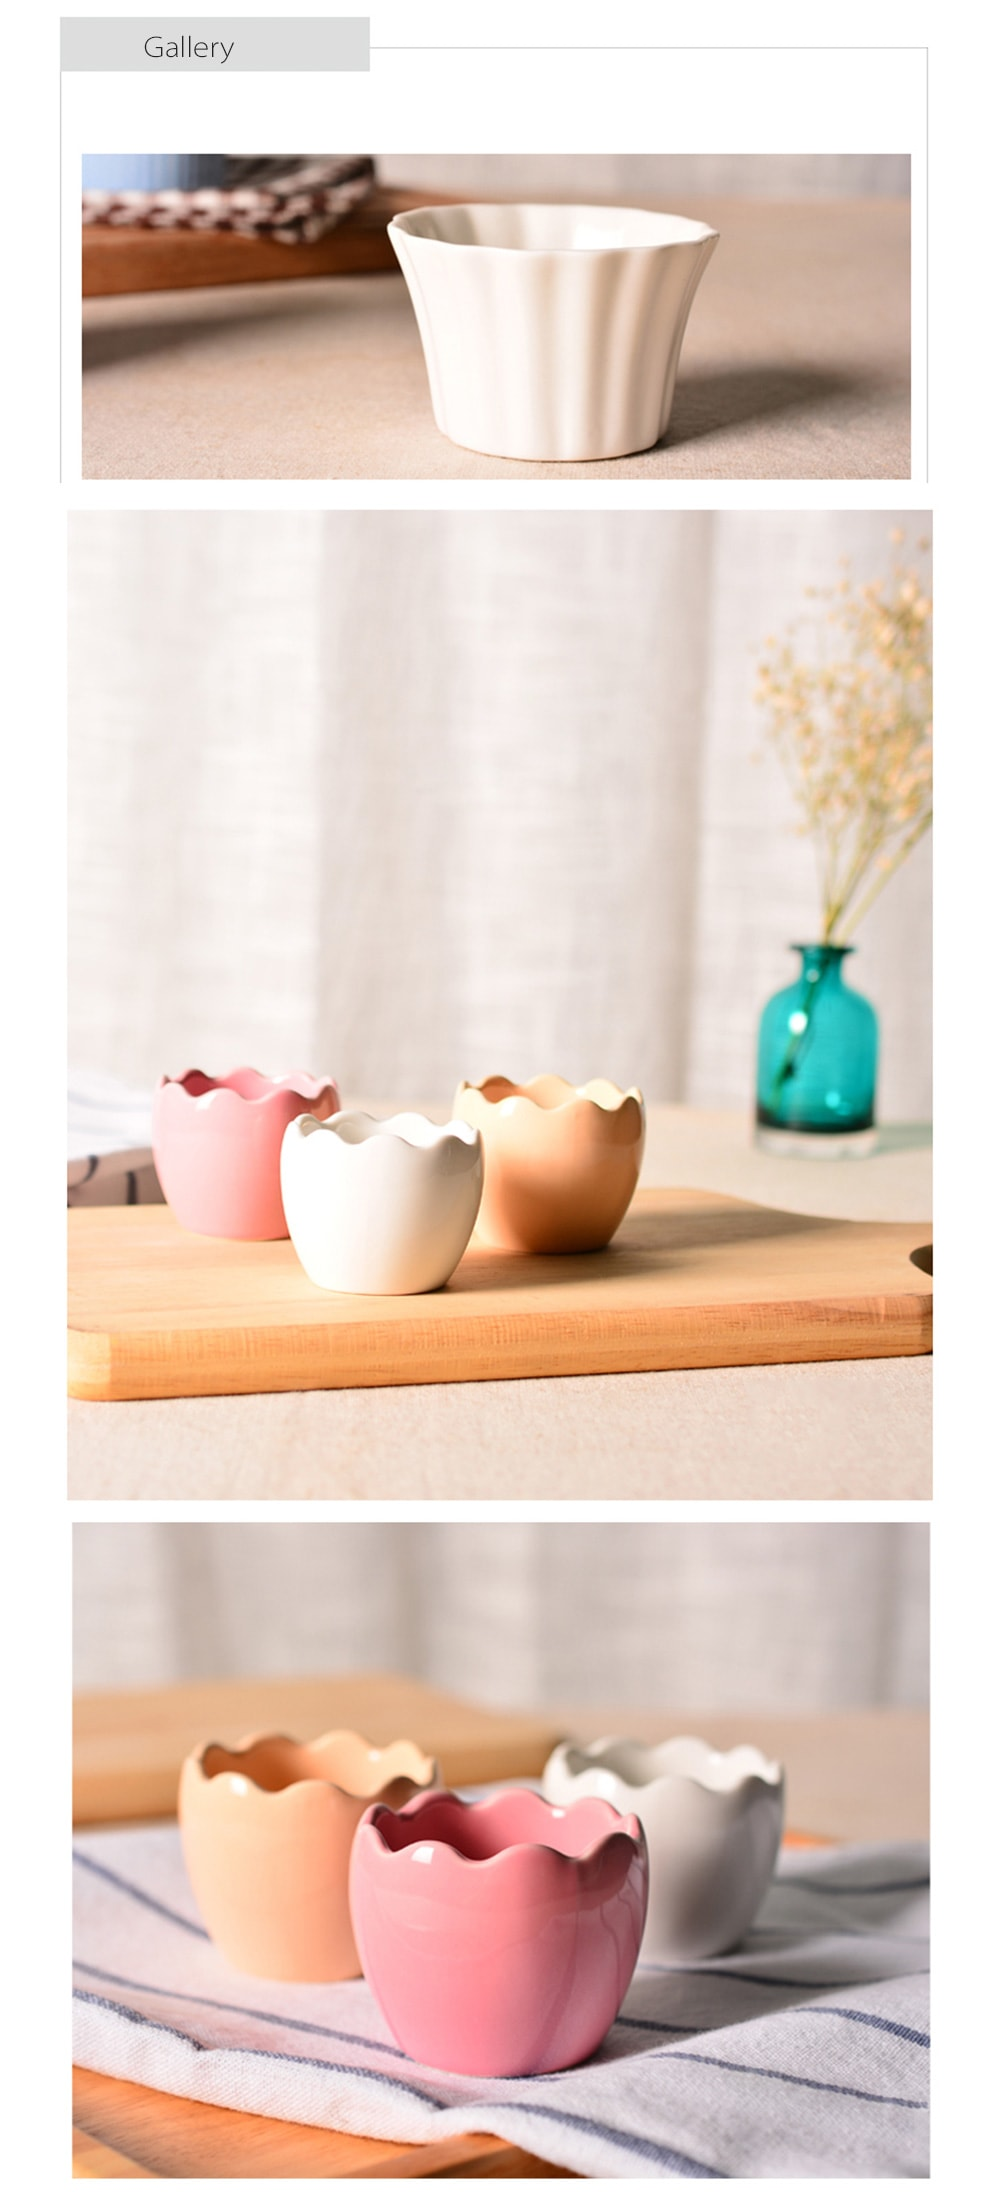 Baking Cups Set of 3 Beautiful Bright Ceramic Colors